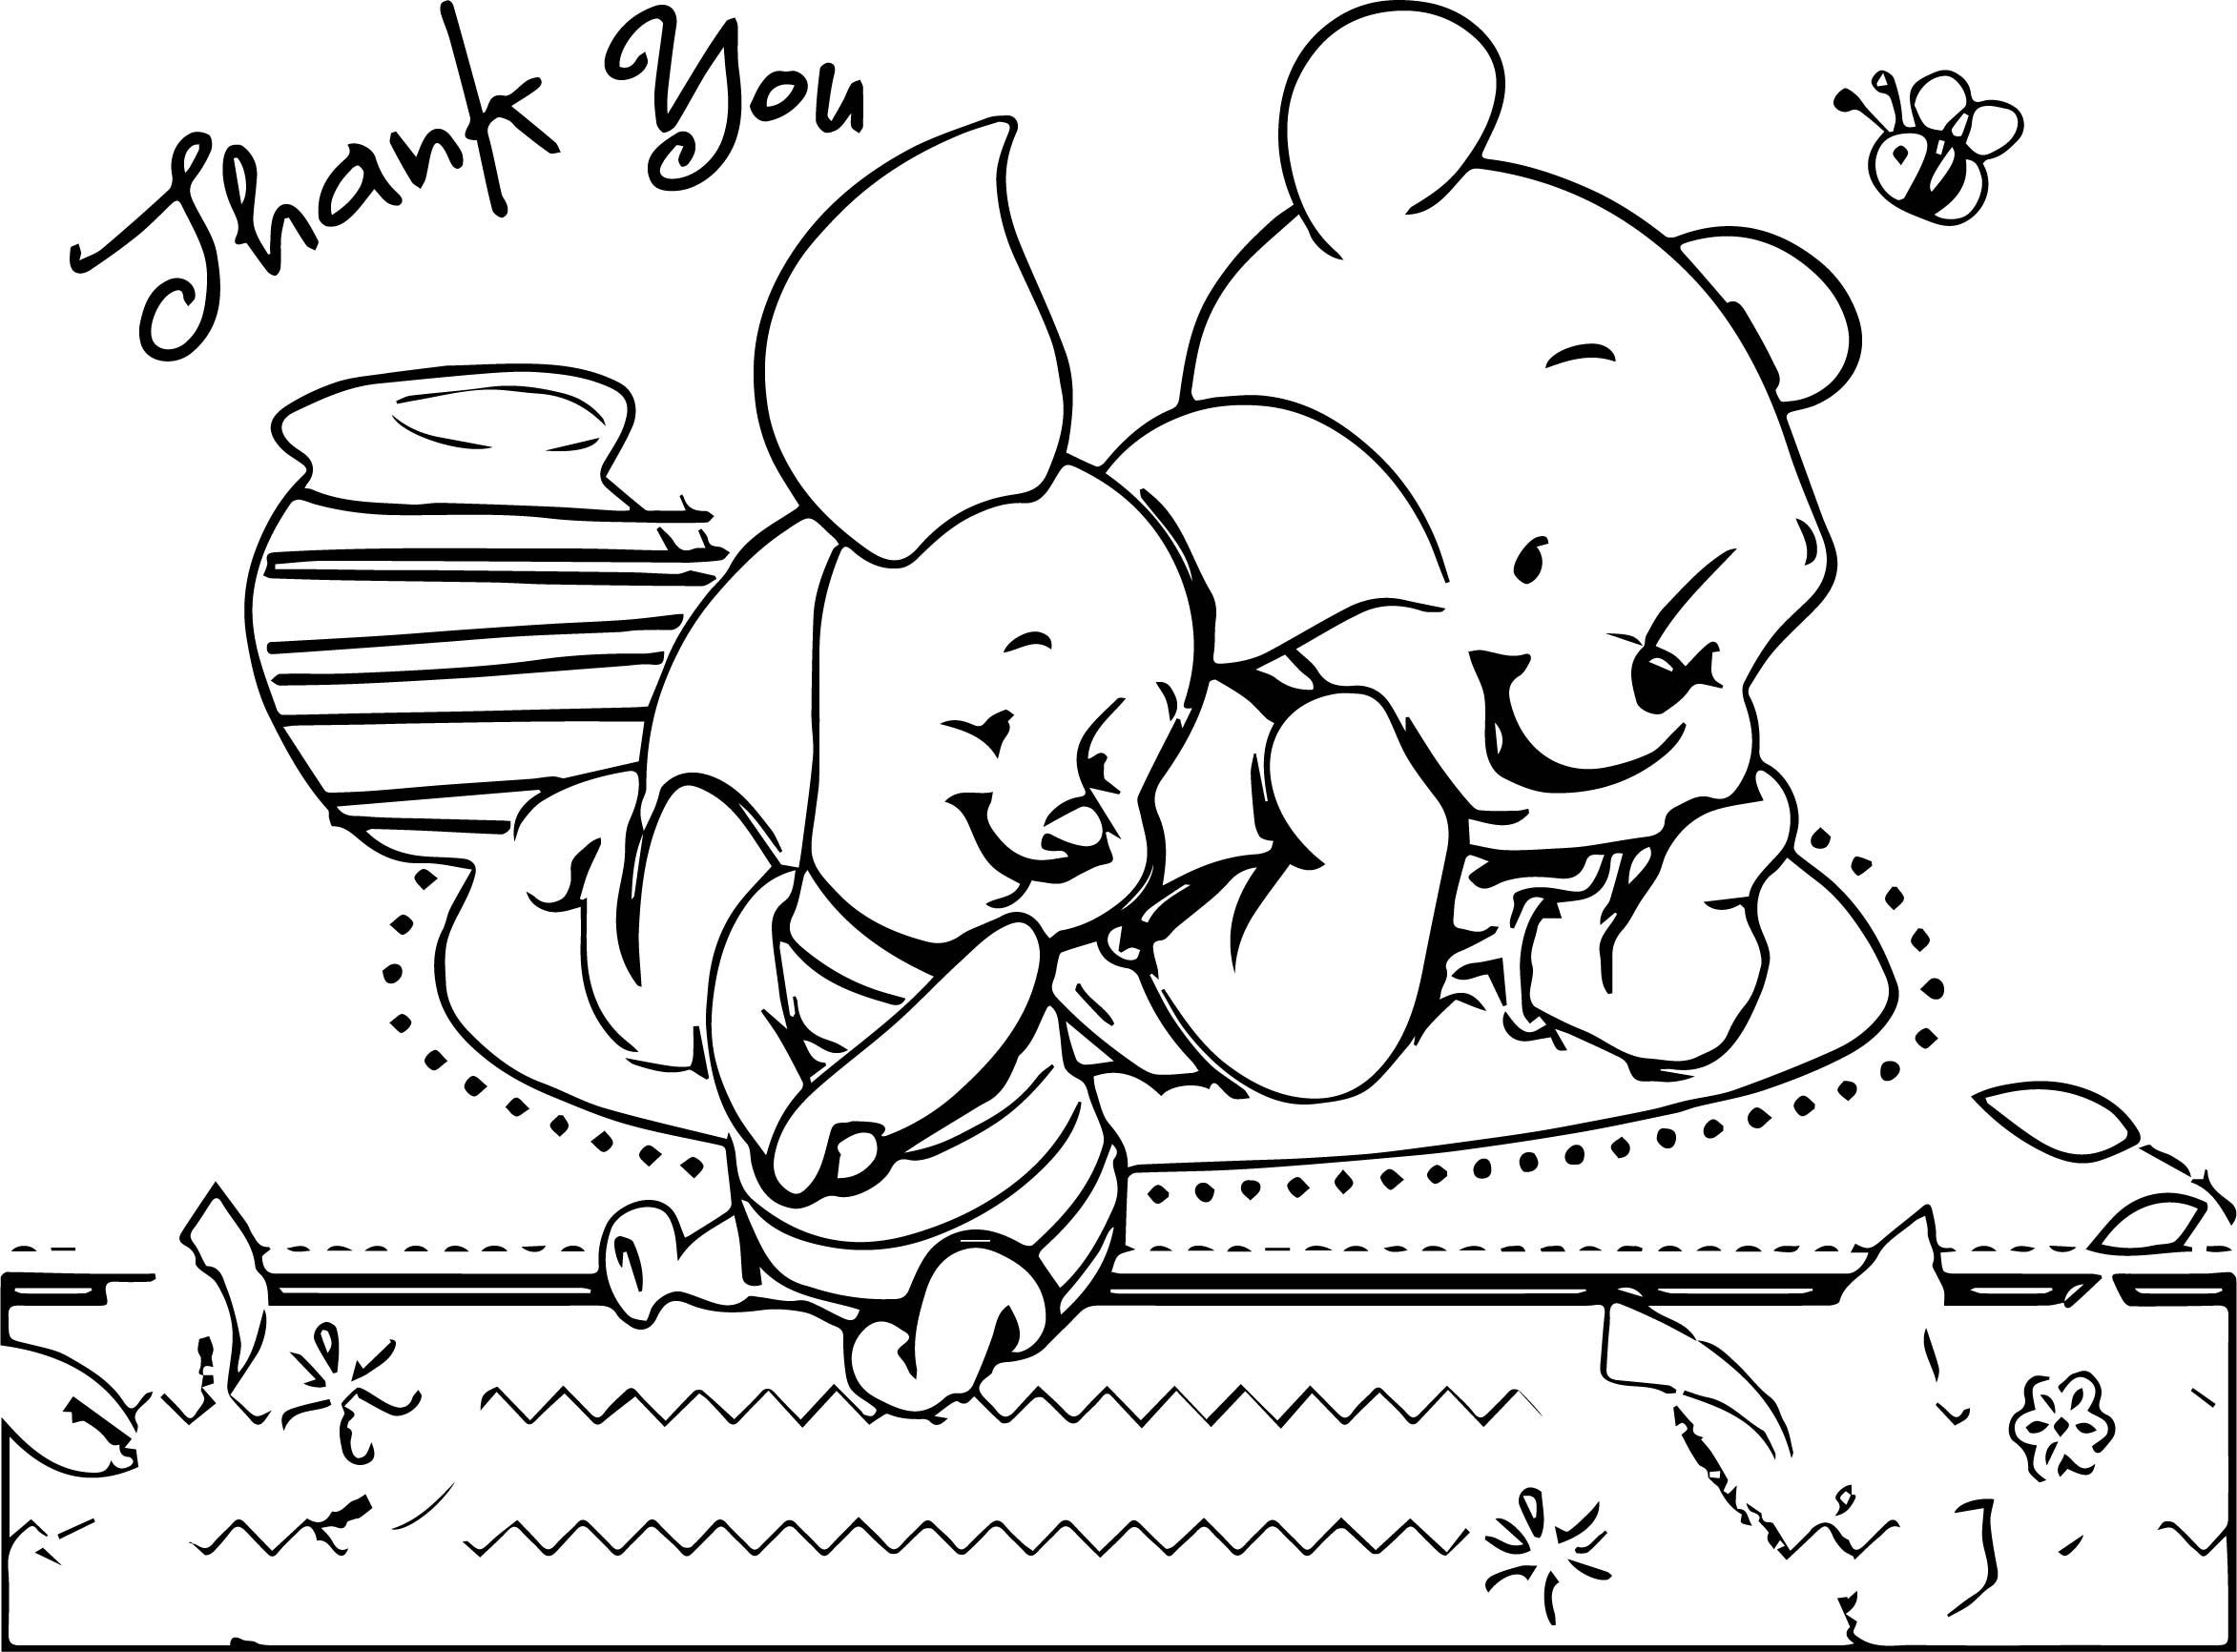 Awesome Pooh Bear Baby Thank You Coloring Page